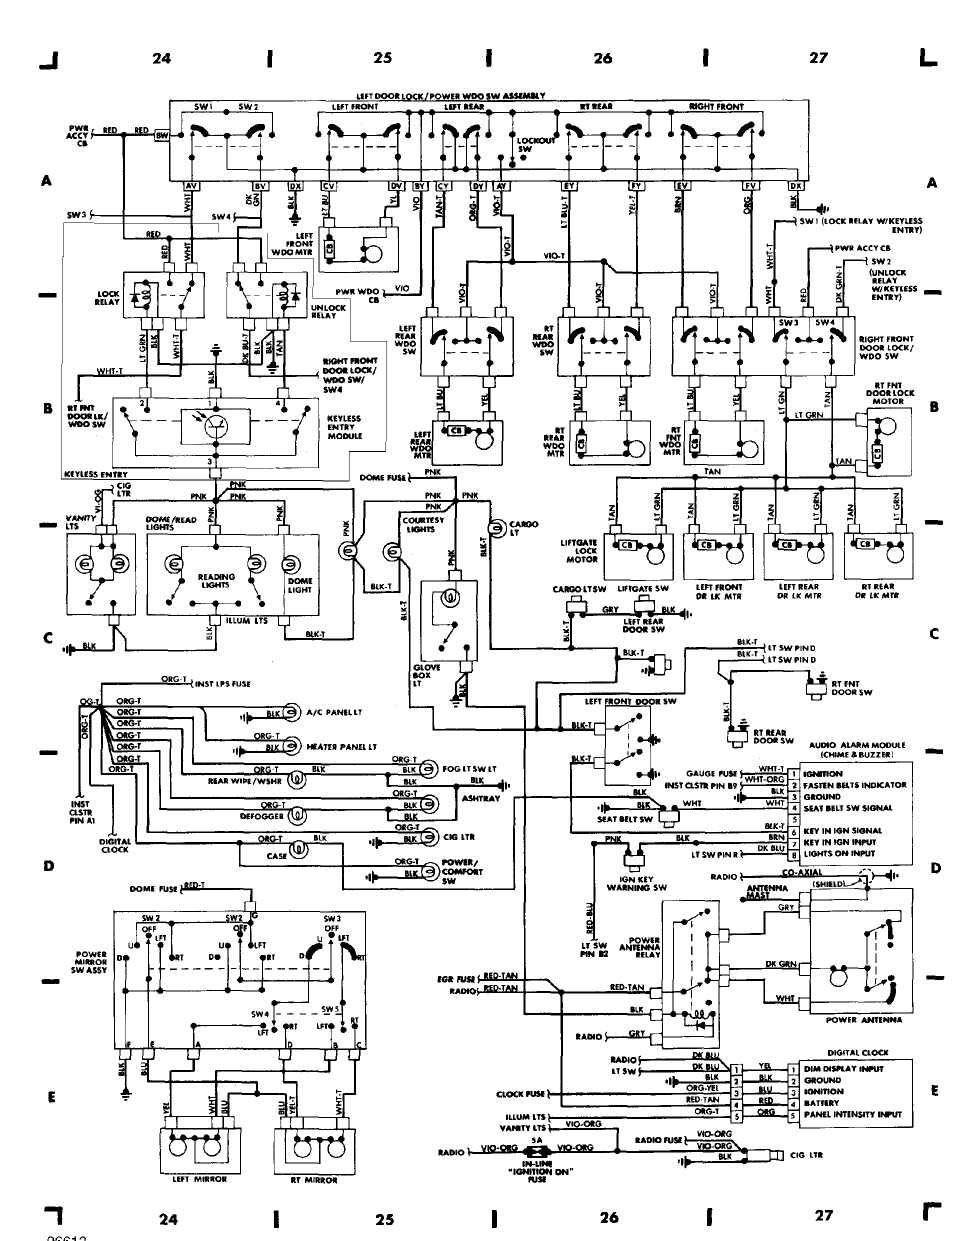 wiring_diagrams_html_61f5e0ad 2000 jeep wiring diagram 1998 jeep wrangler wiring diagram \u2022 free 1994 jeep wrangler fuse box diagram at eliteediting.co